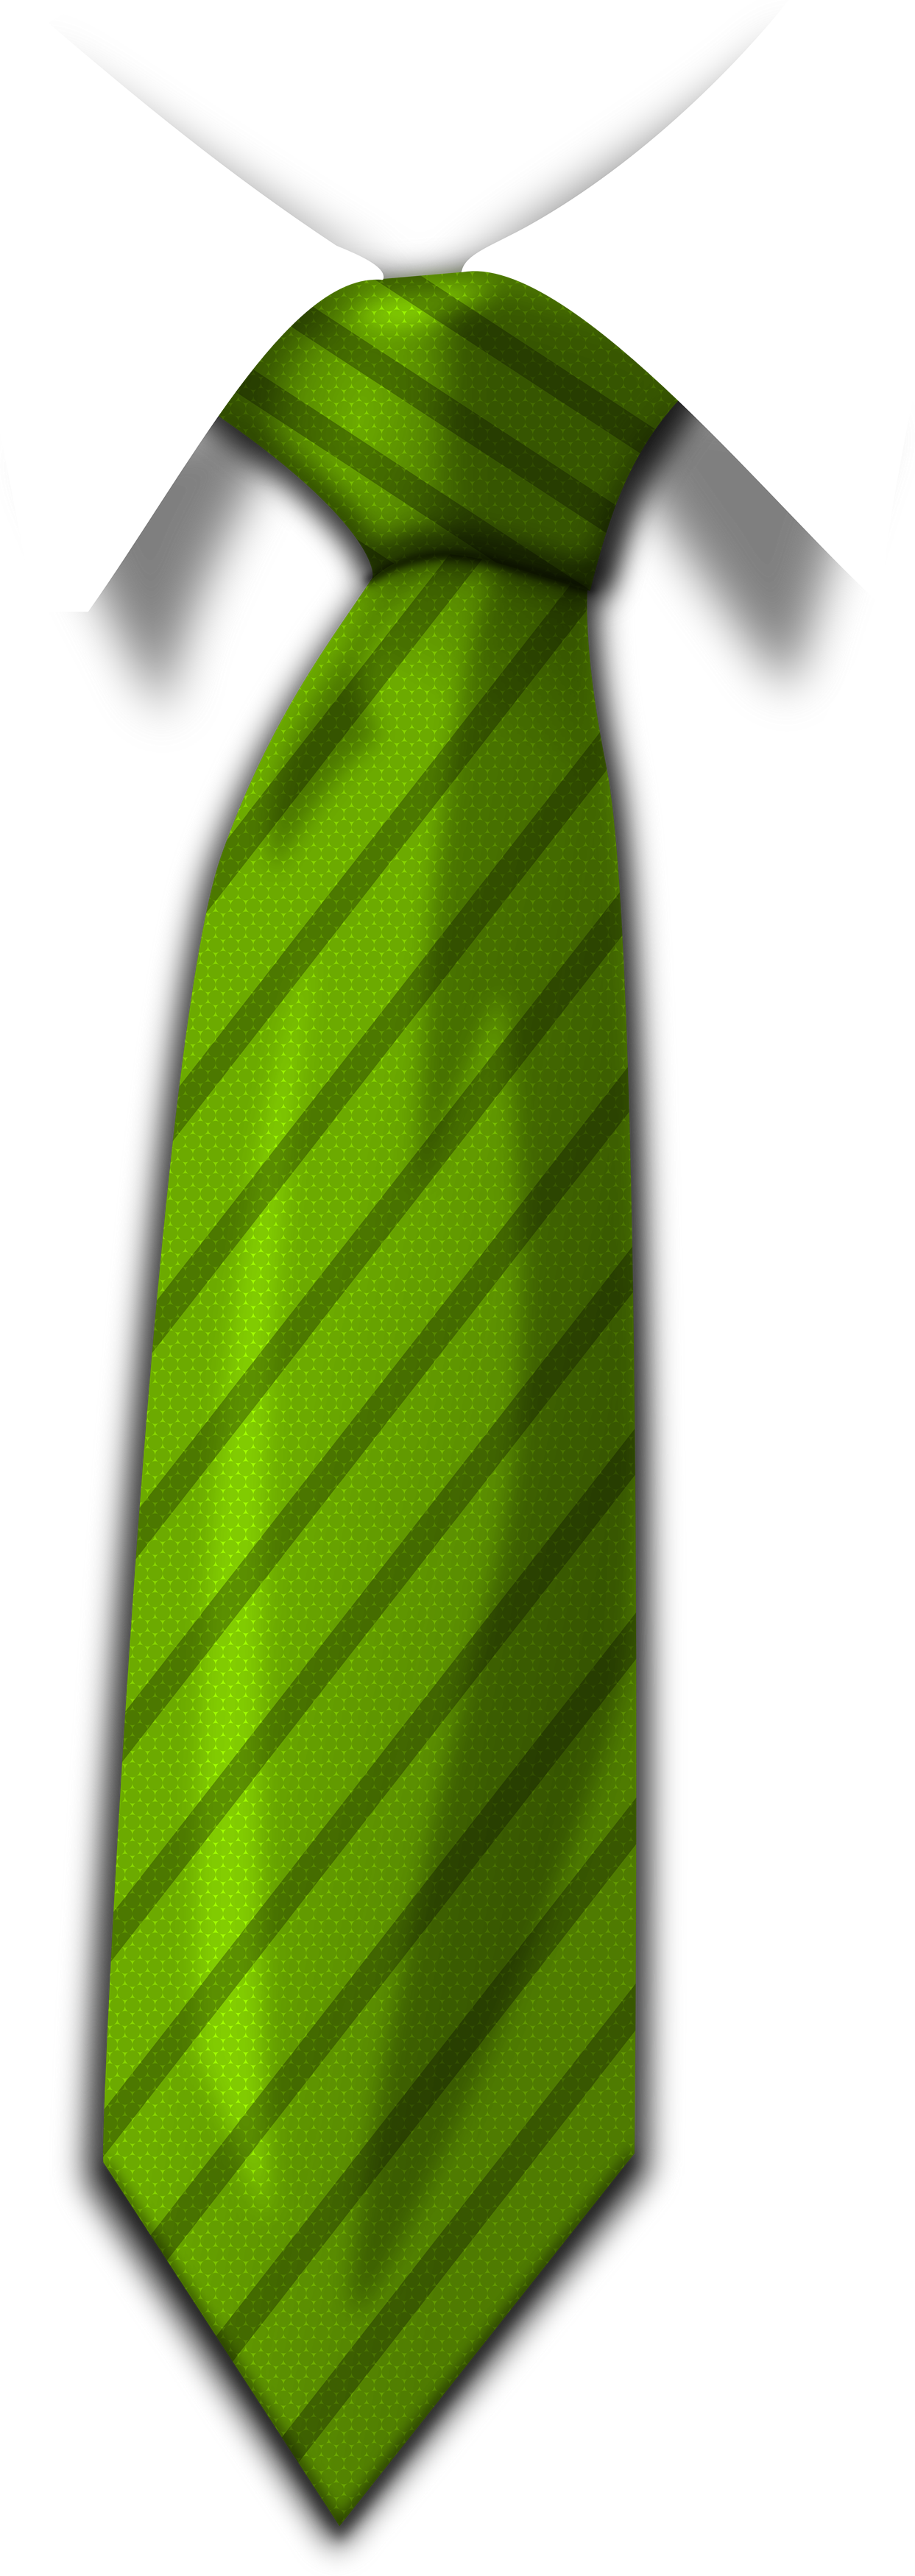 Green Tie Png image #42577